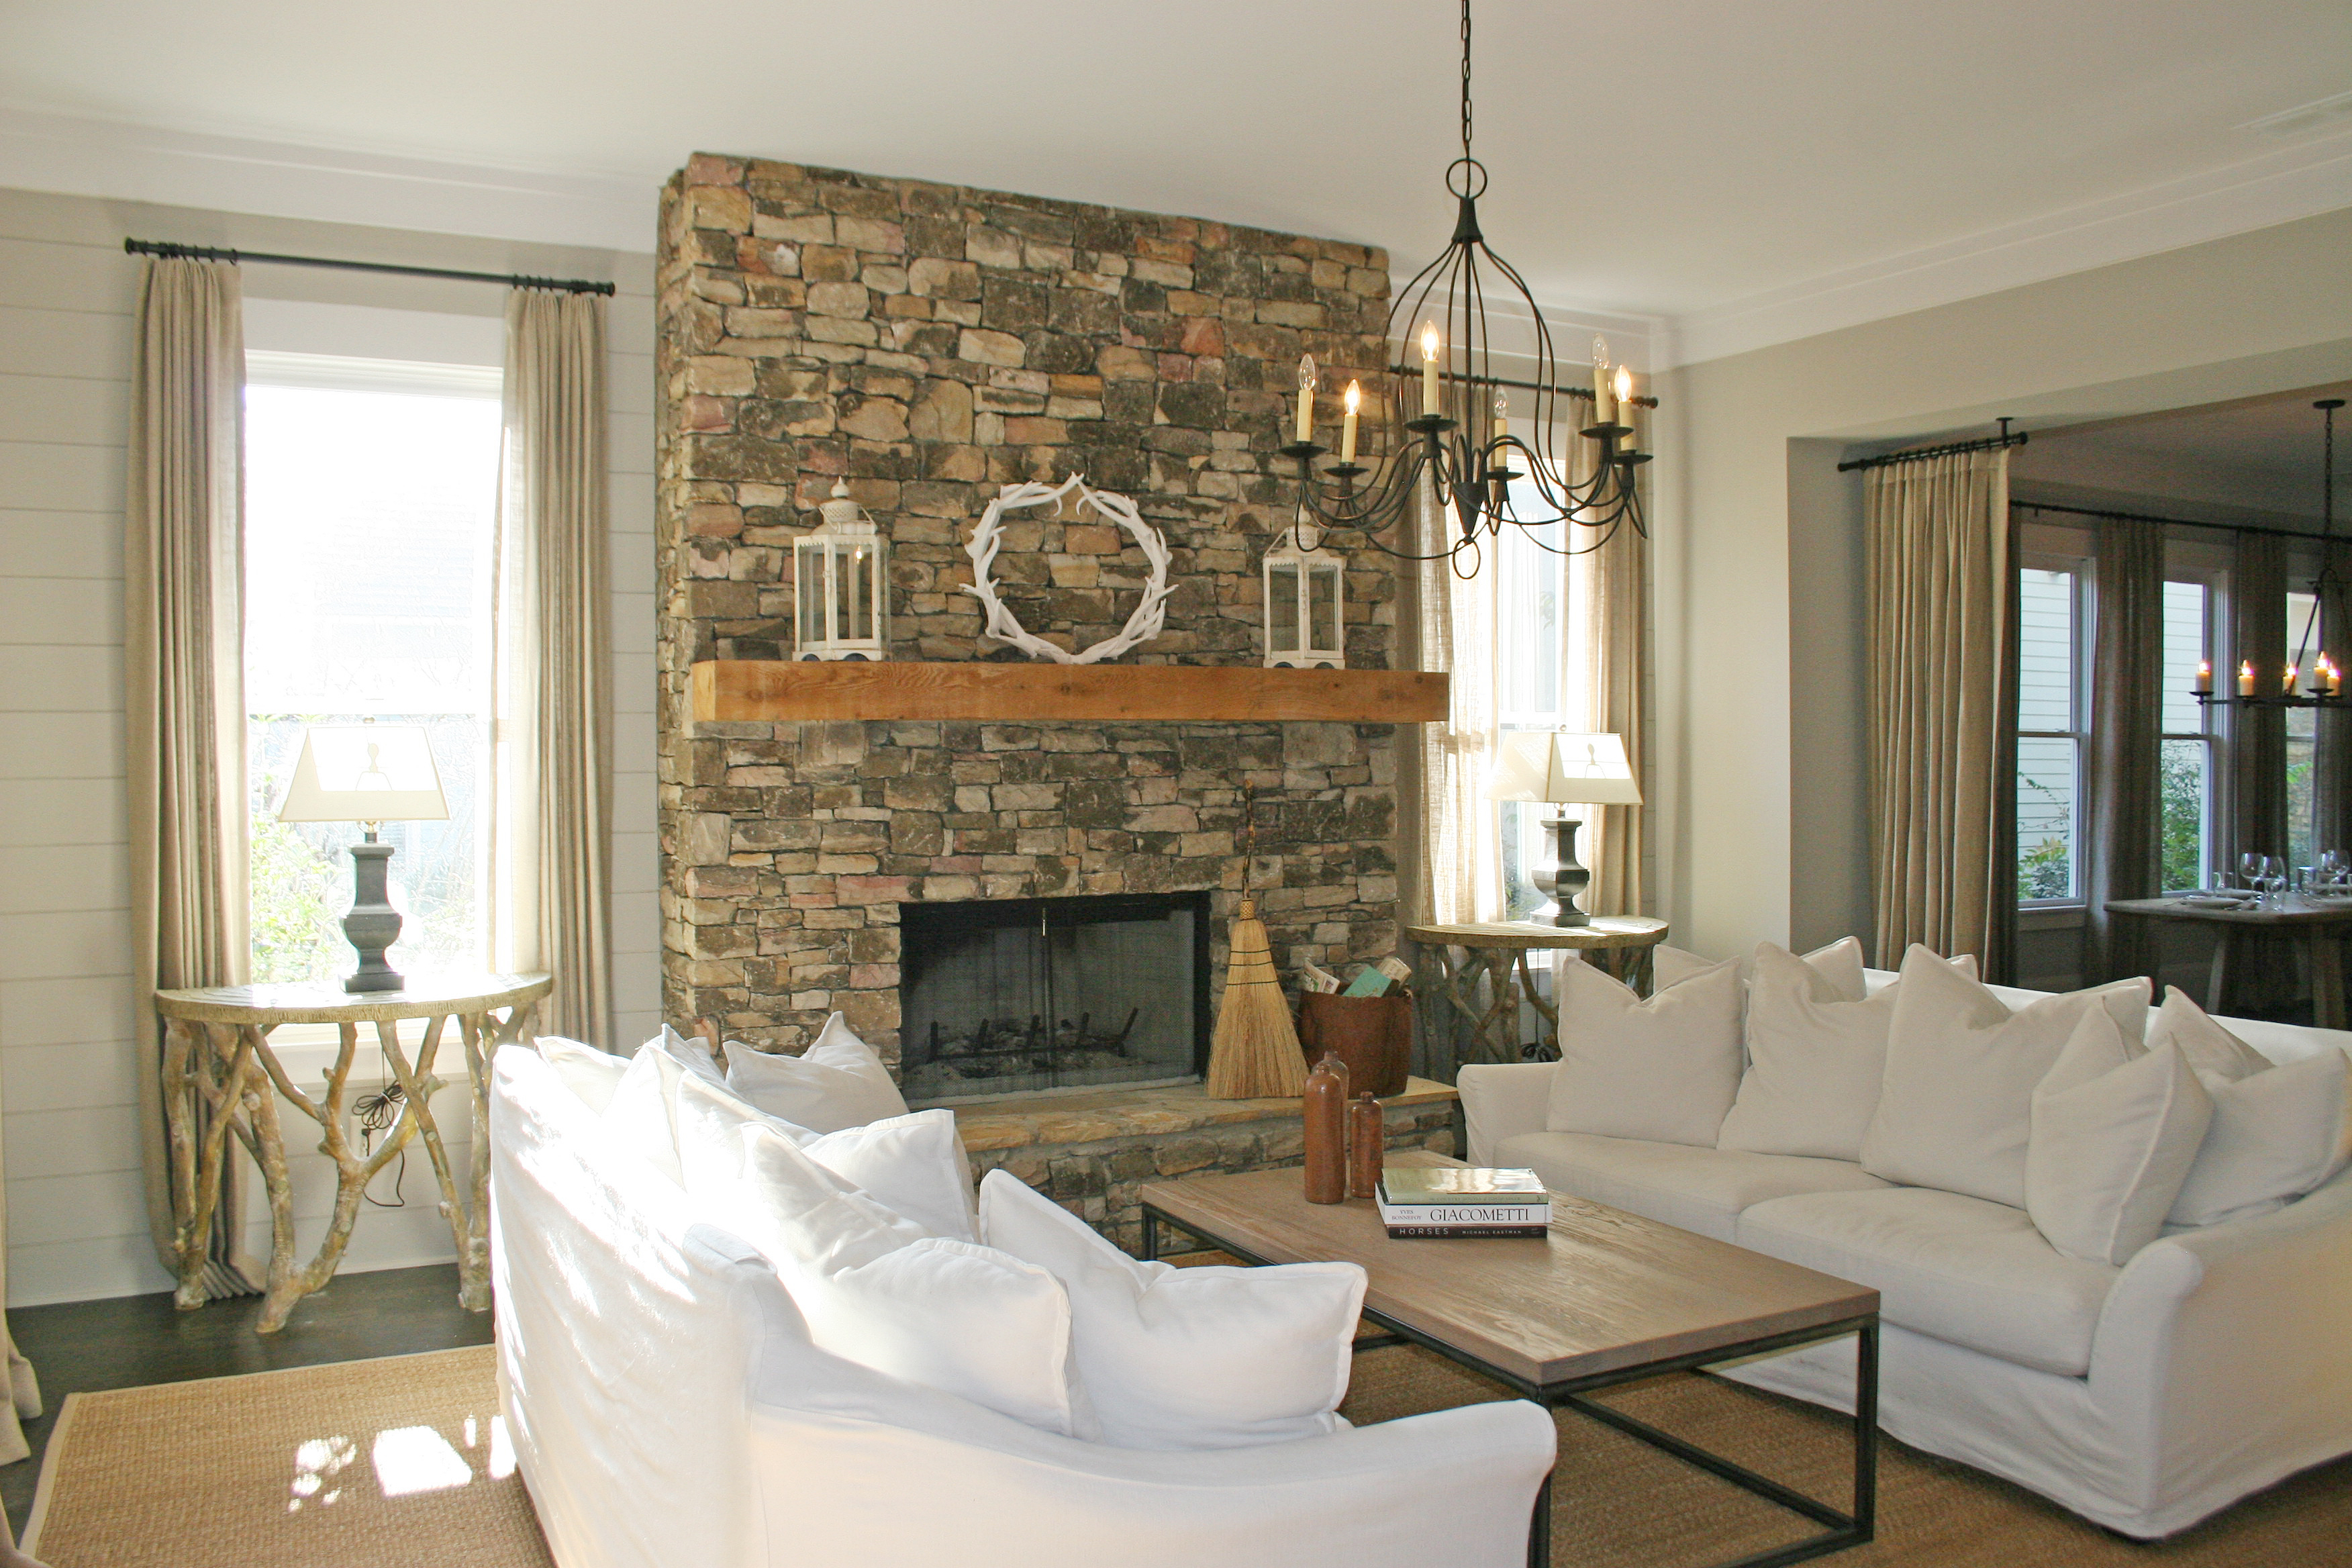 Paint Colors For Family Room With Fireplace Part - 35: Stone Fireplace Sofas Table Pillows Curtains Rug Lamp Chandelier